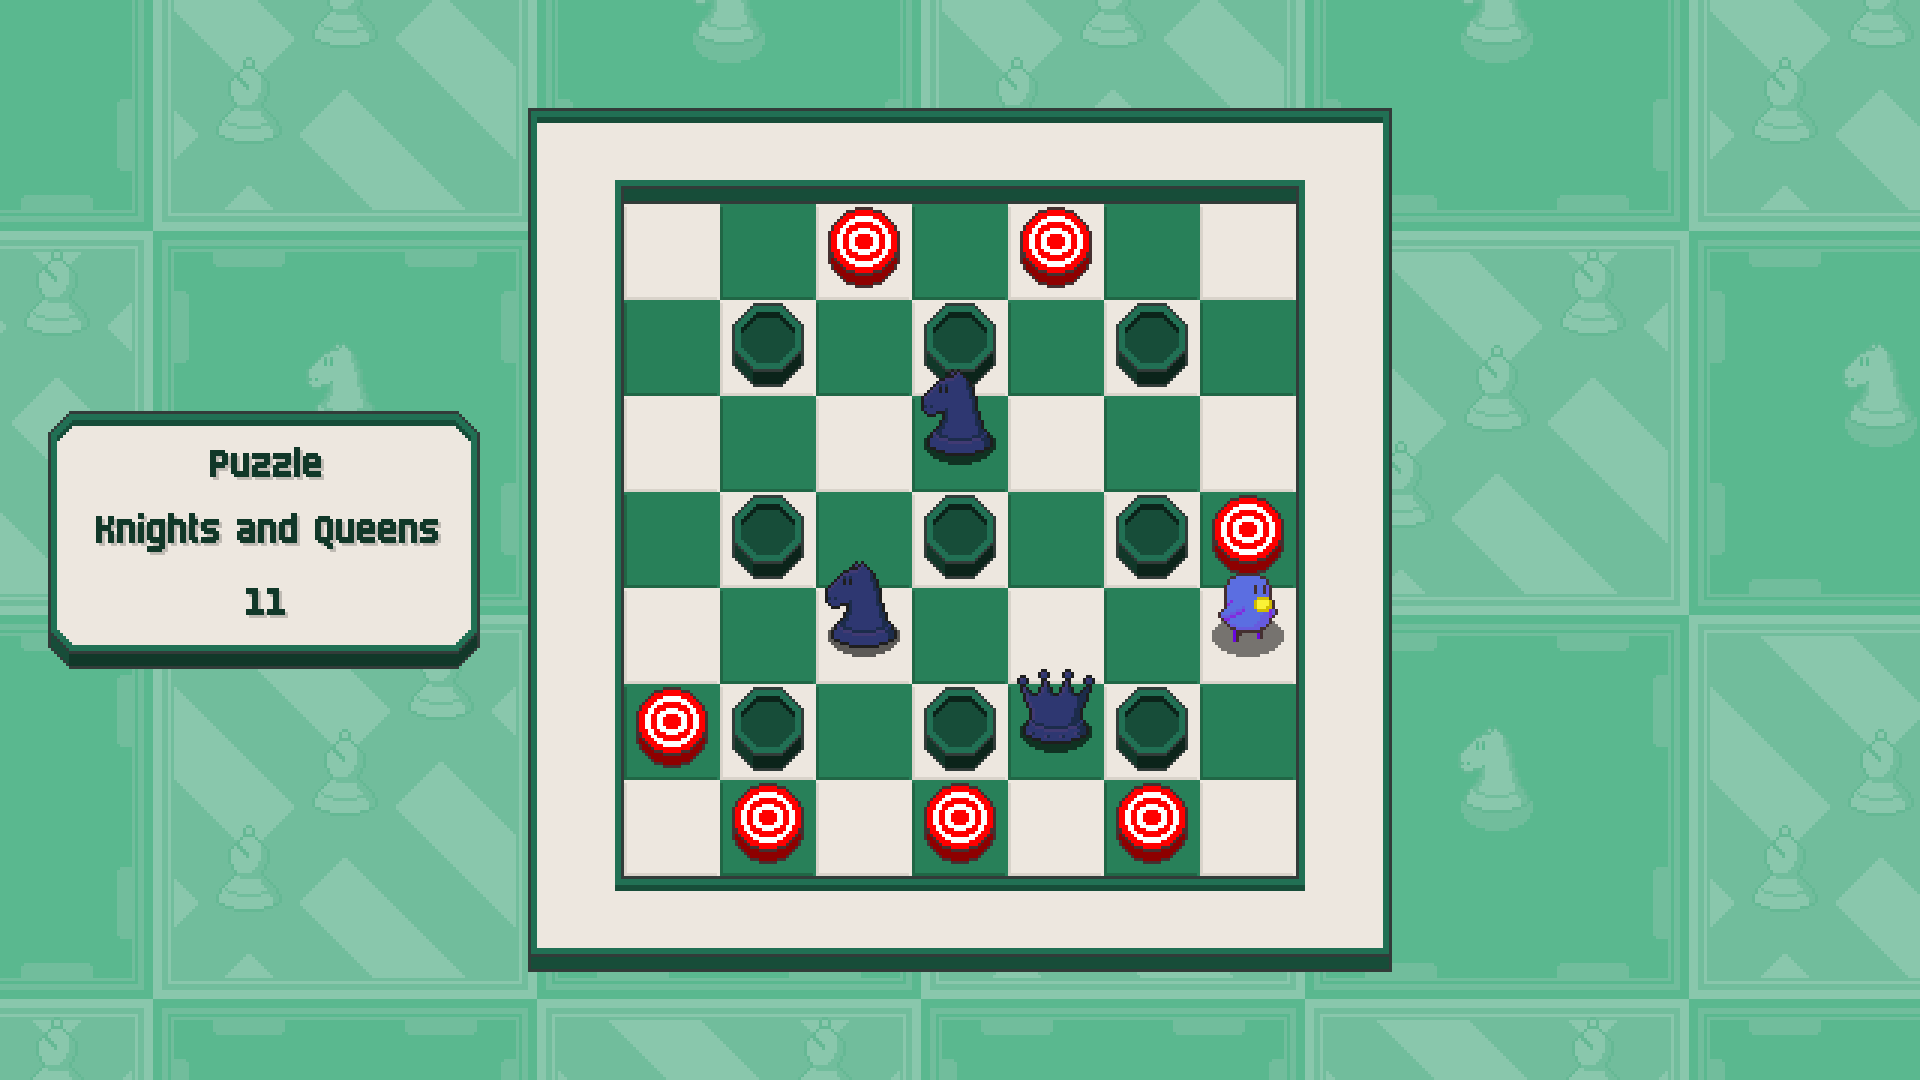 Chessplosion - Puzzle Solution Guide + Achievements Walkthrough - Grandblaster: Knights and Queens - 9FE63EA